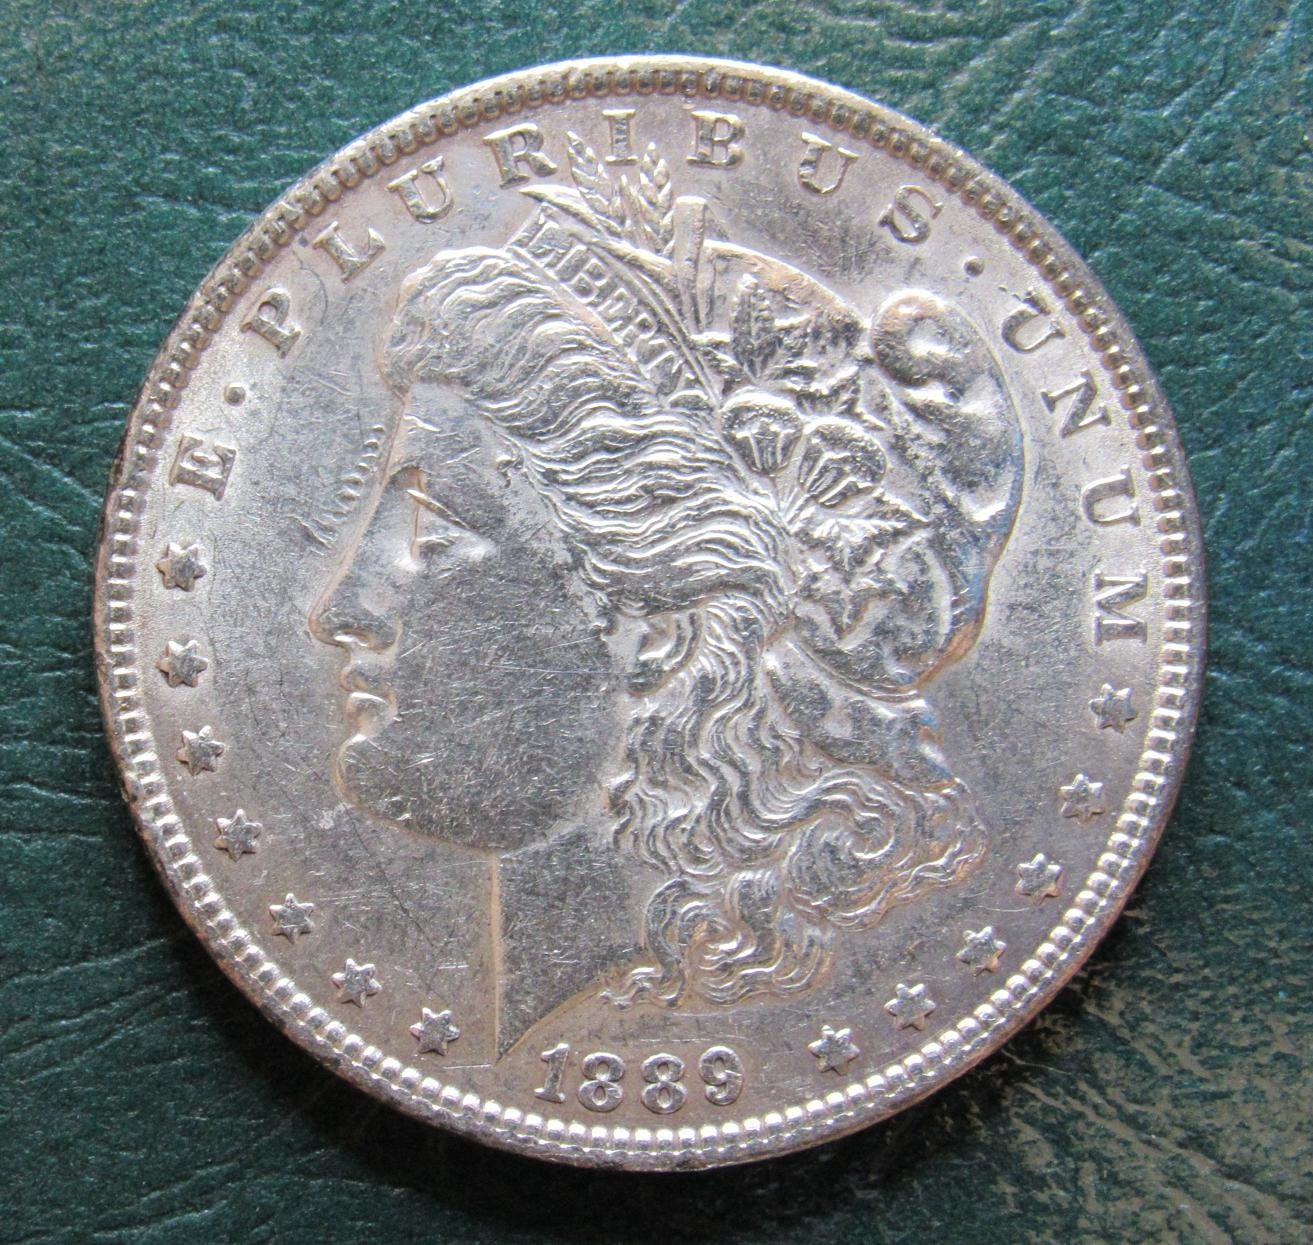 1889 P Morgan Silver Dollar For Sale Buy Now Online